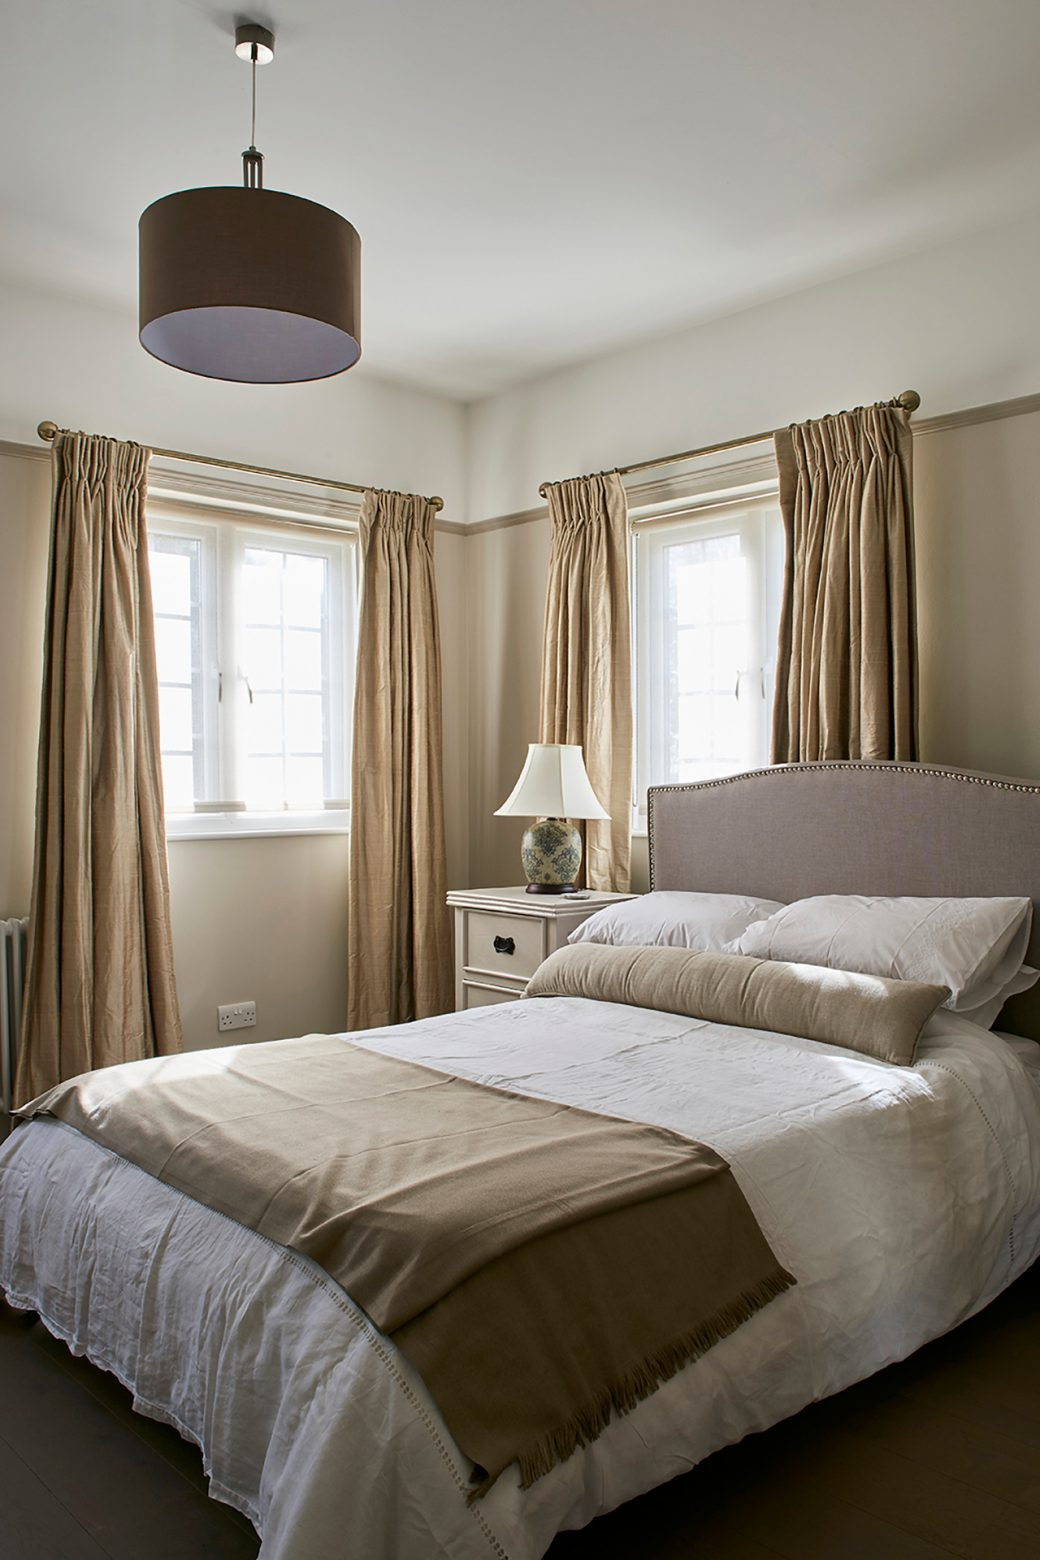 A brown and beige traditional bedroom